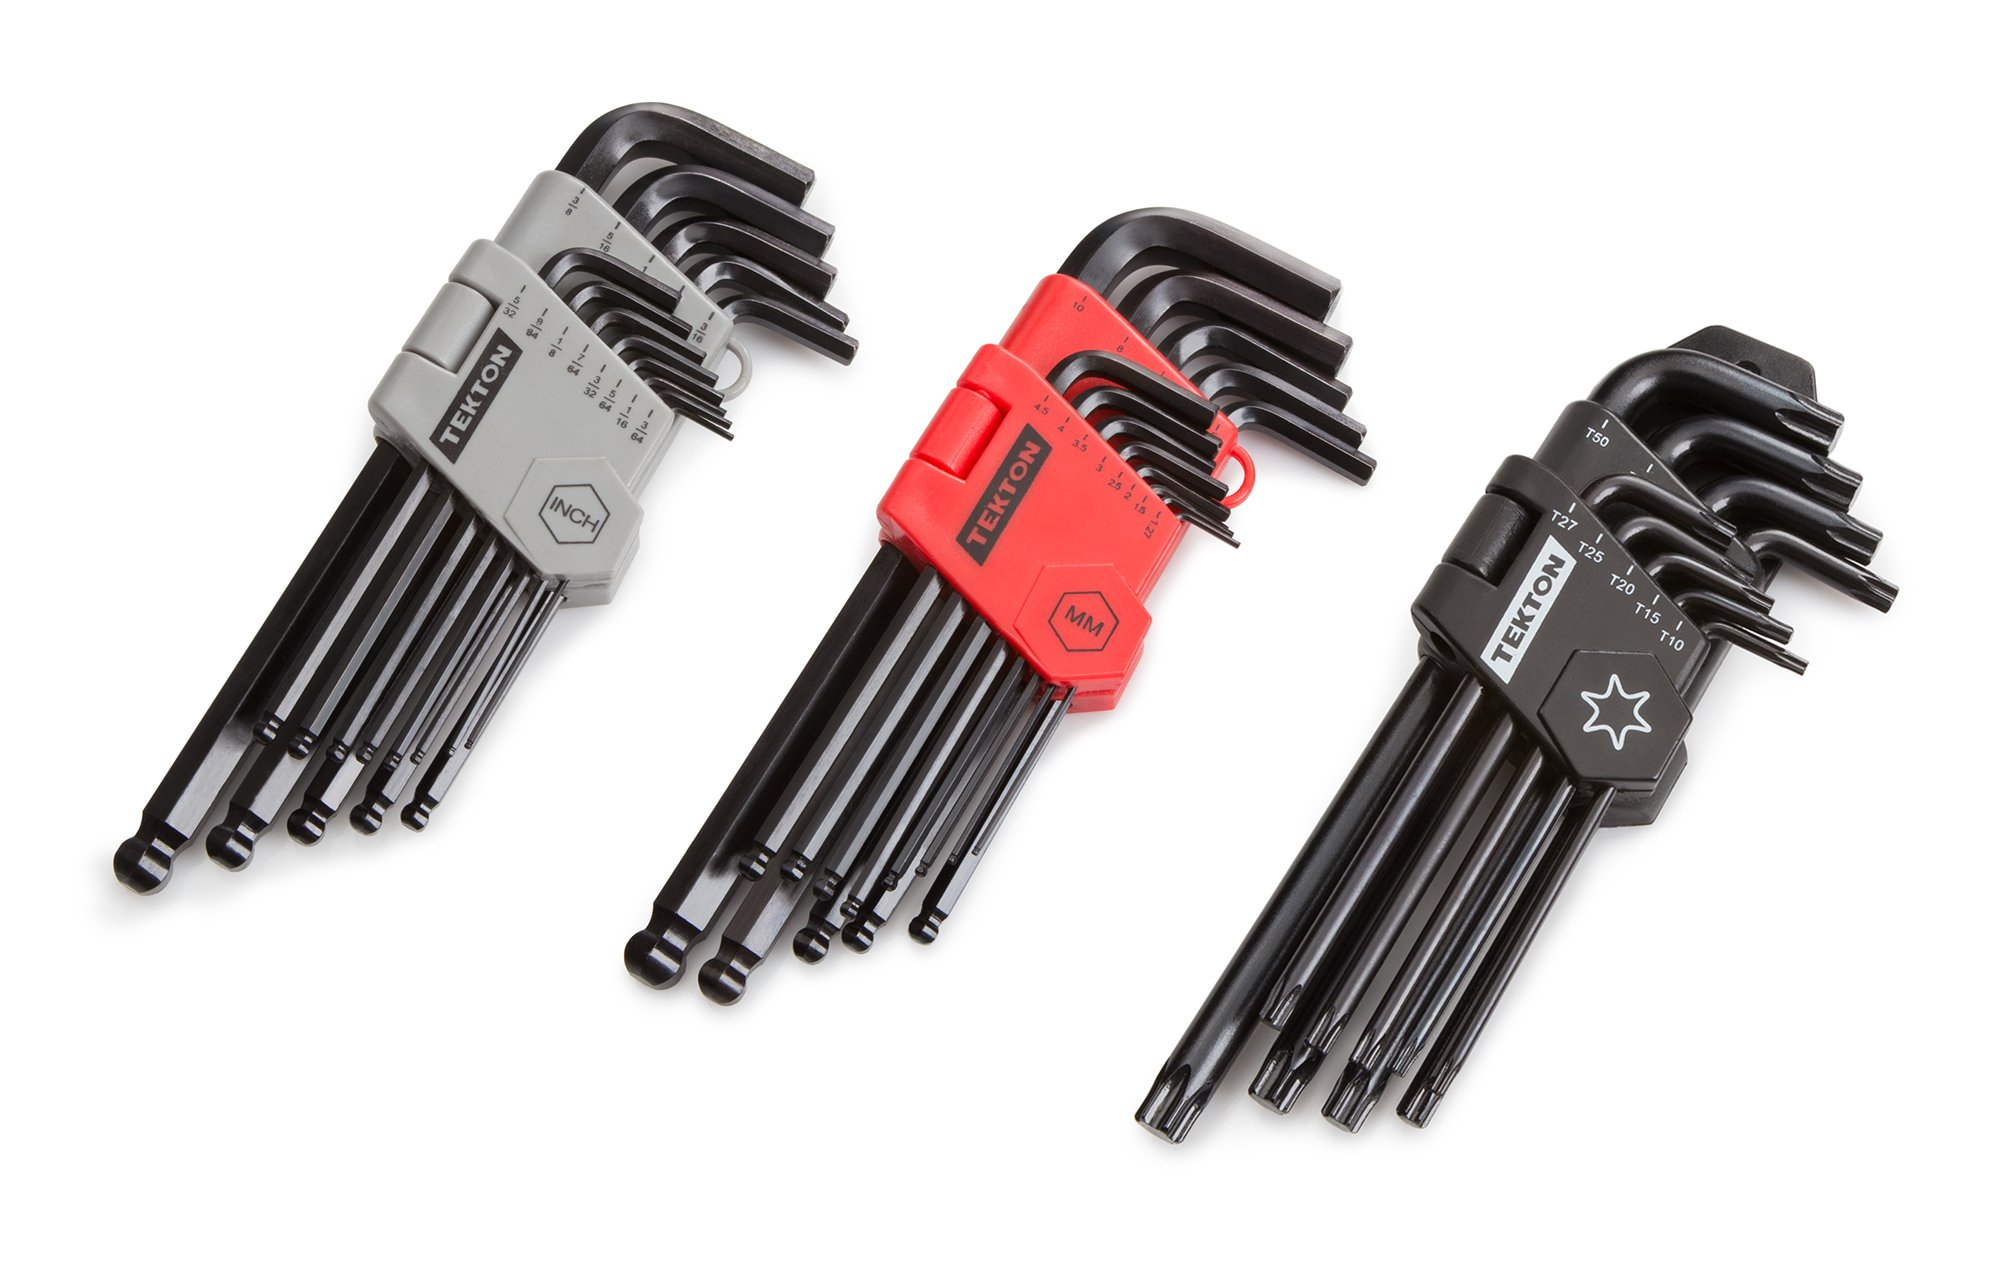 TEKTON 25282 Long Arm Ball End Hex Key Wrench Set, Inch/Metric with TEKTON 25291 Star Key Set